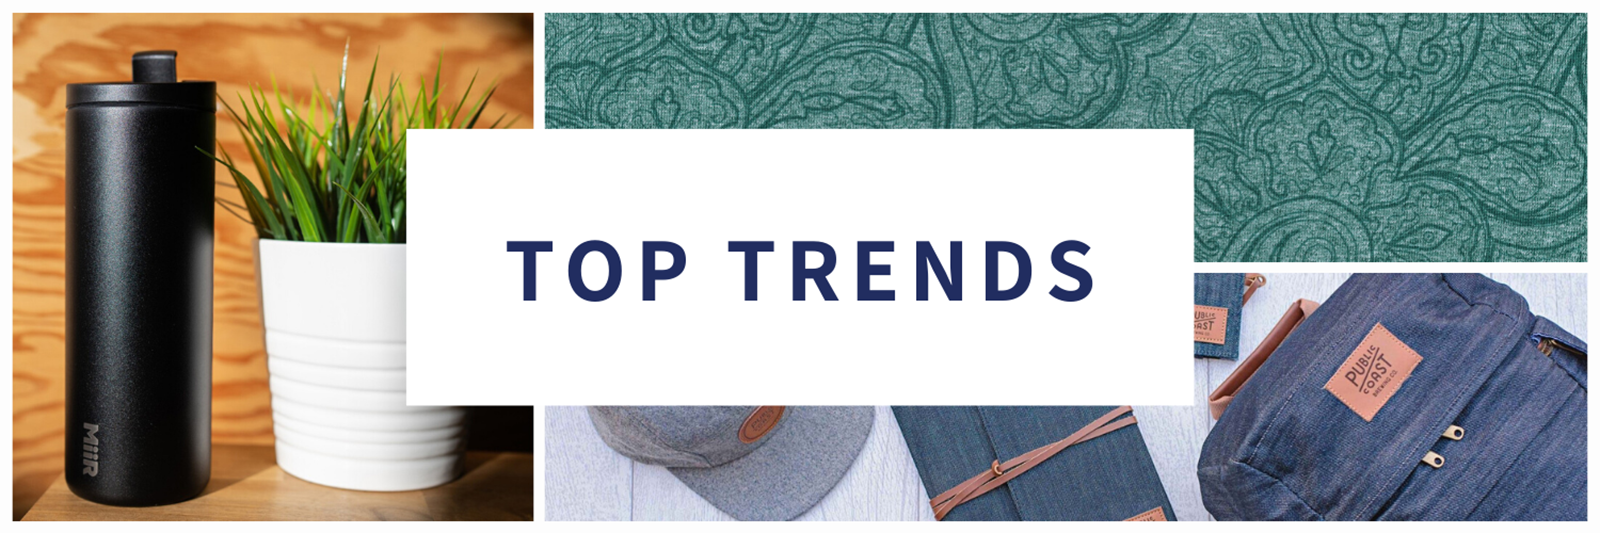 Top Trends header image